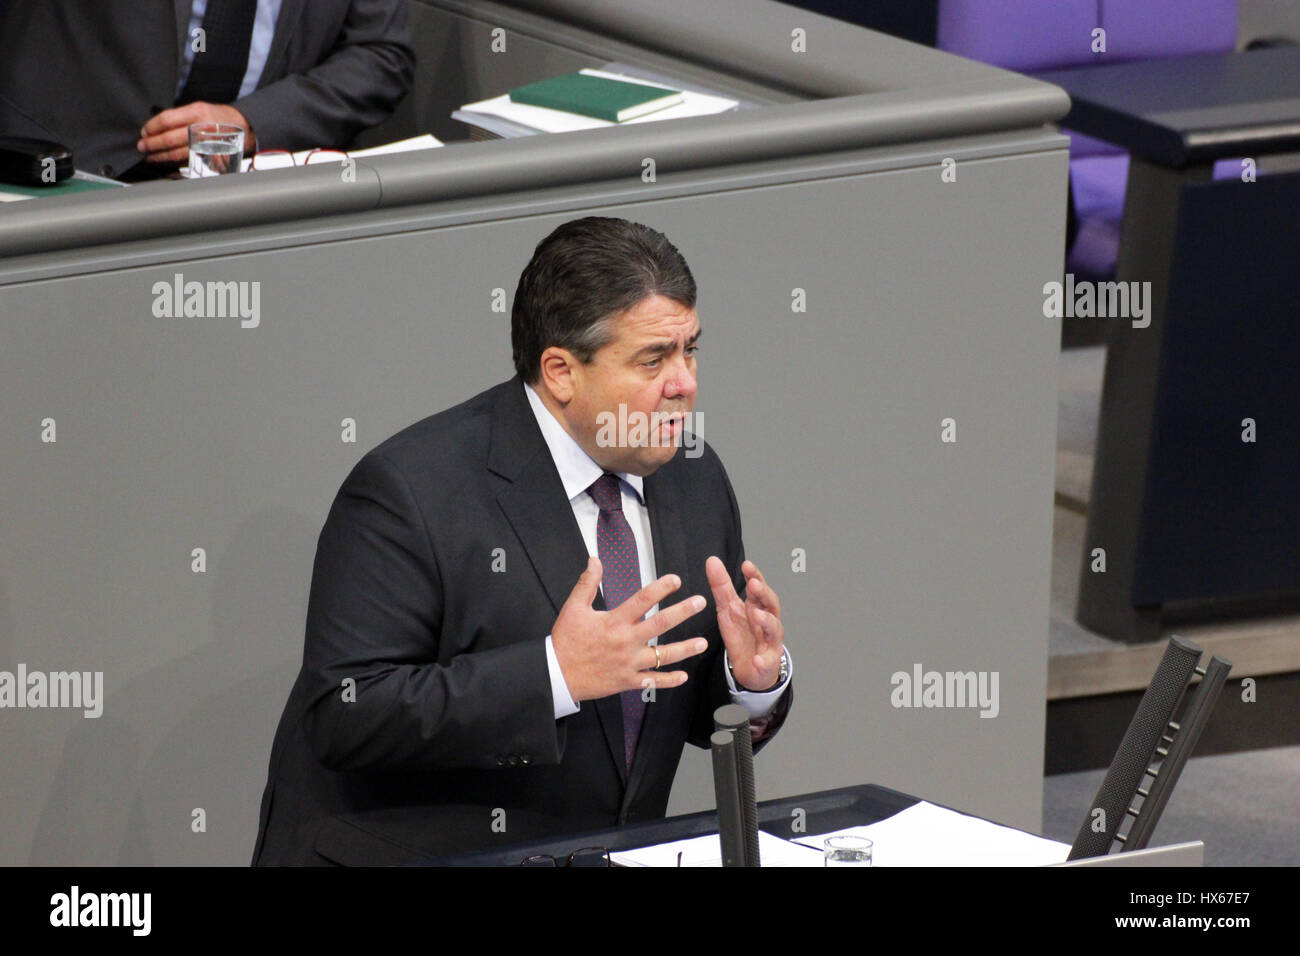 Berlin, Germany, September 25th, 2014: Minister of Economy Siegmar Gabriel holds speech in Bundestag. - Stock Image